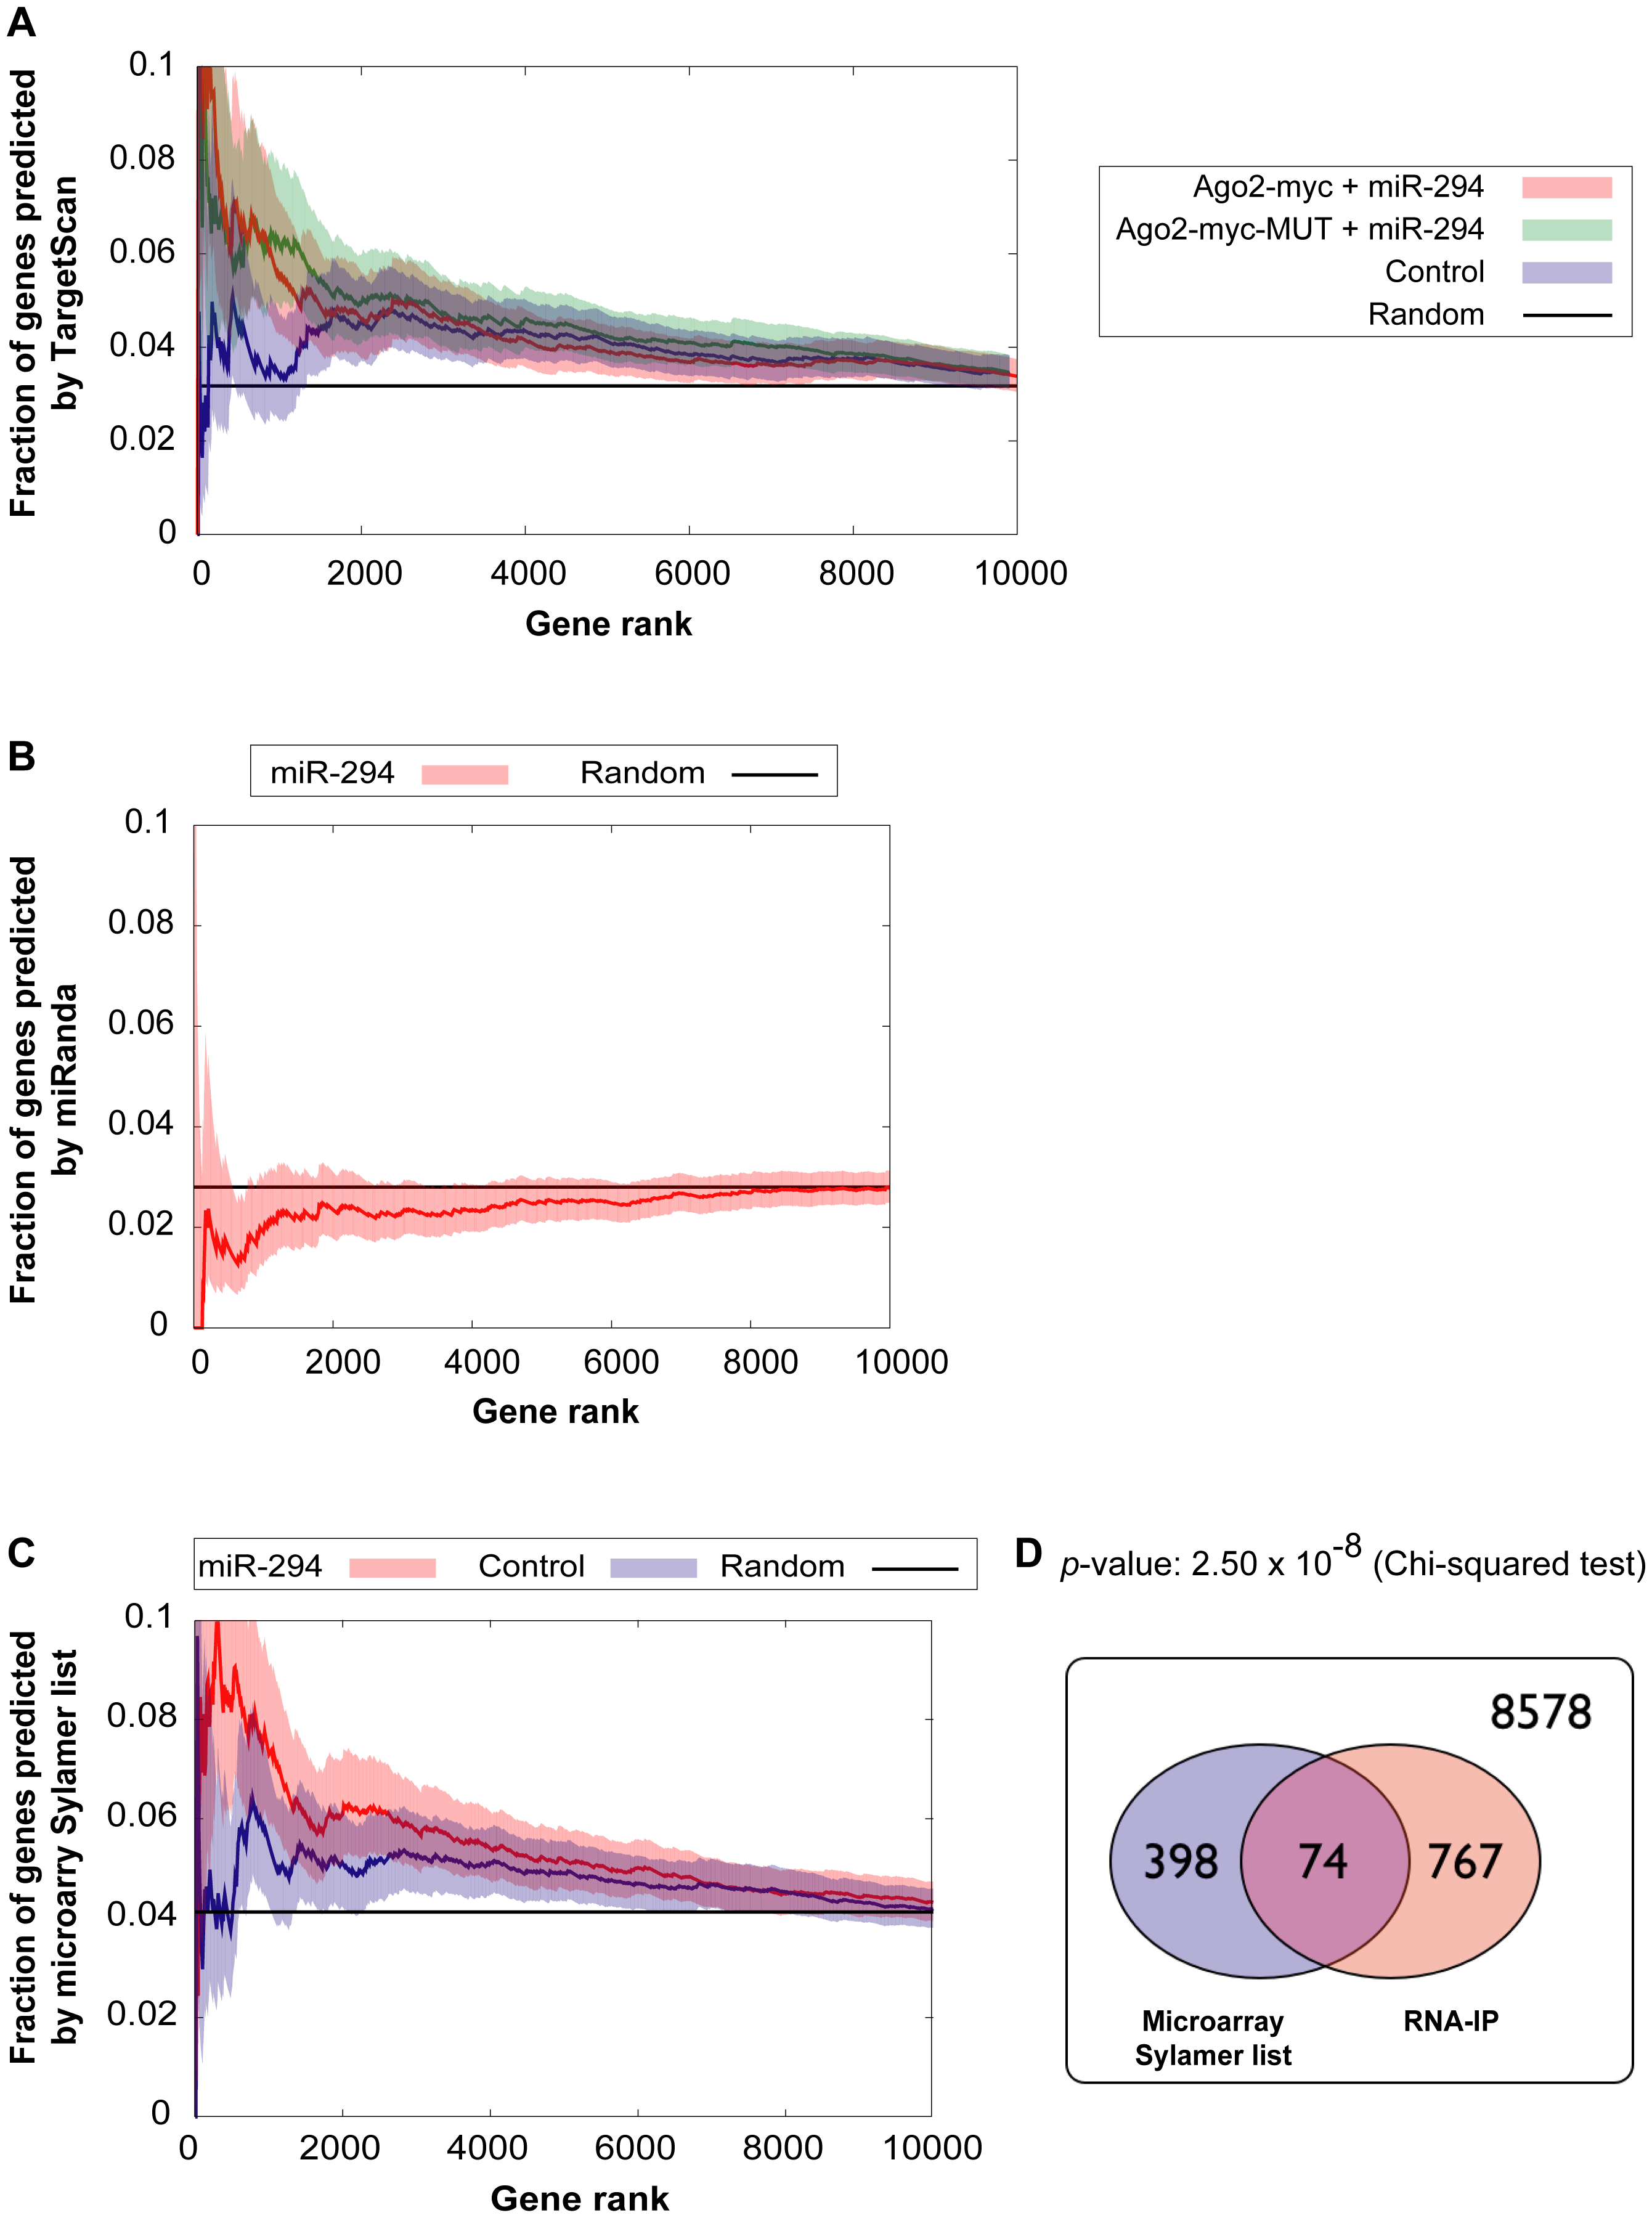 Comparison of genes enriched in the IP with computational and microarray predicted targets.